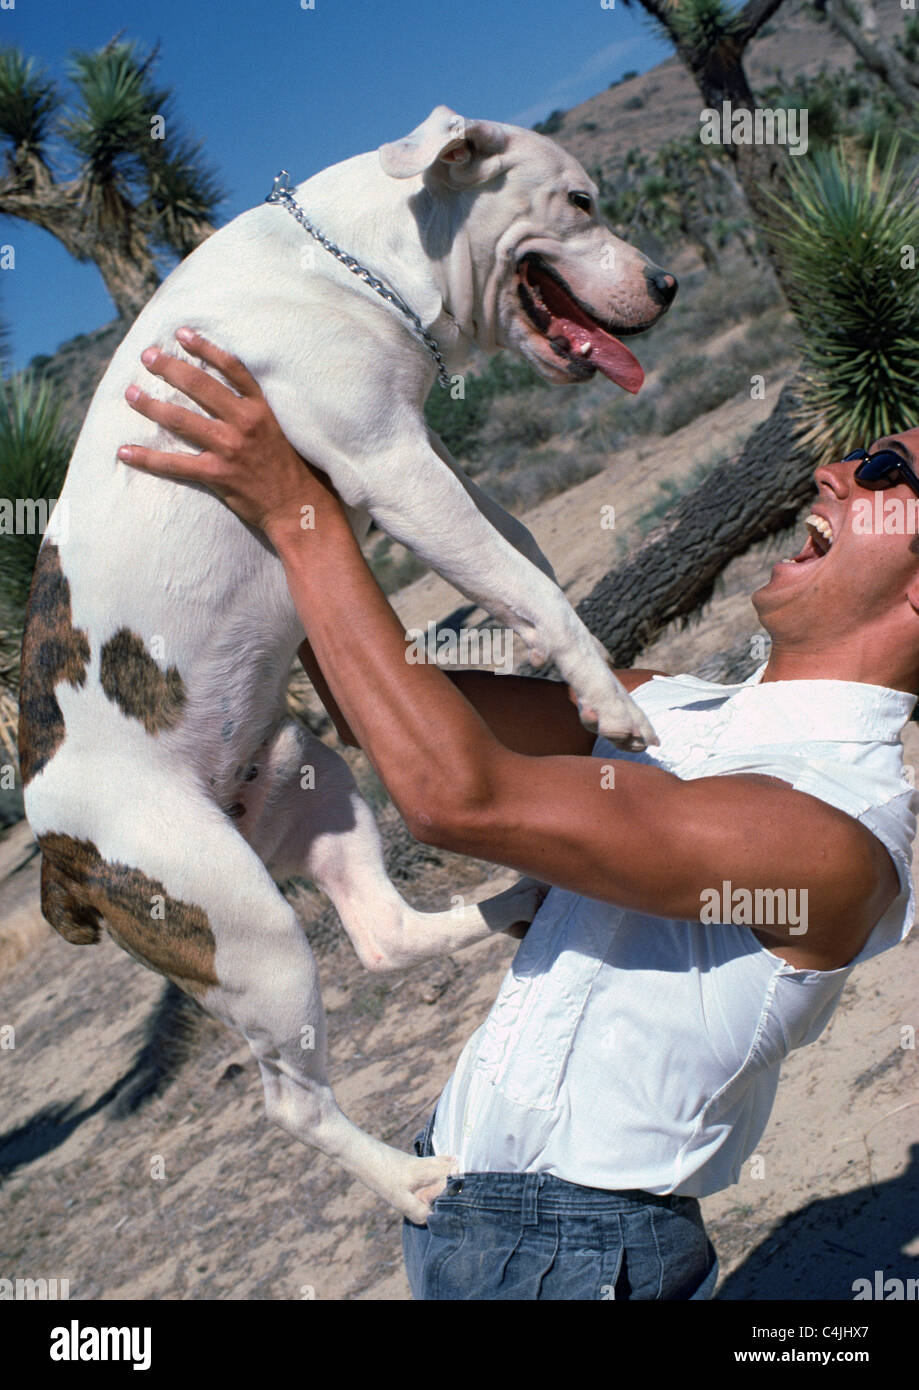 man playing with his dog - Stock Image